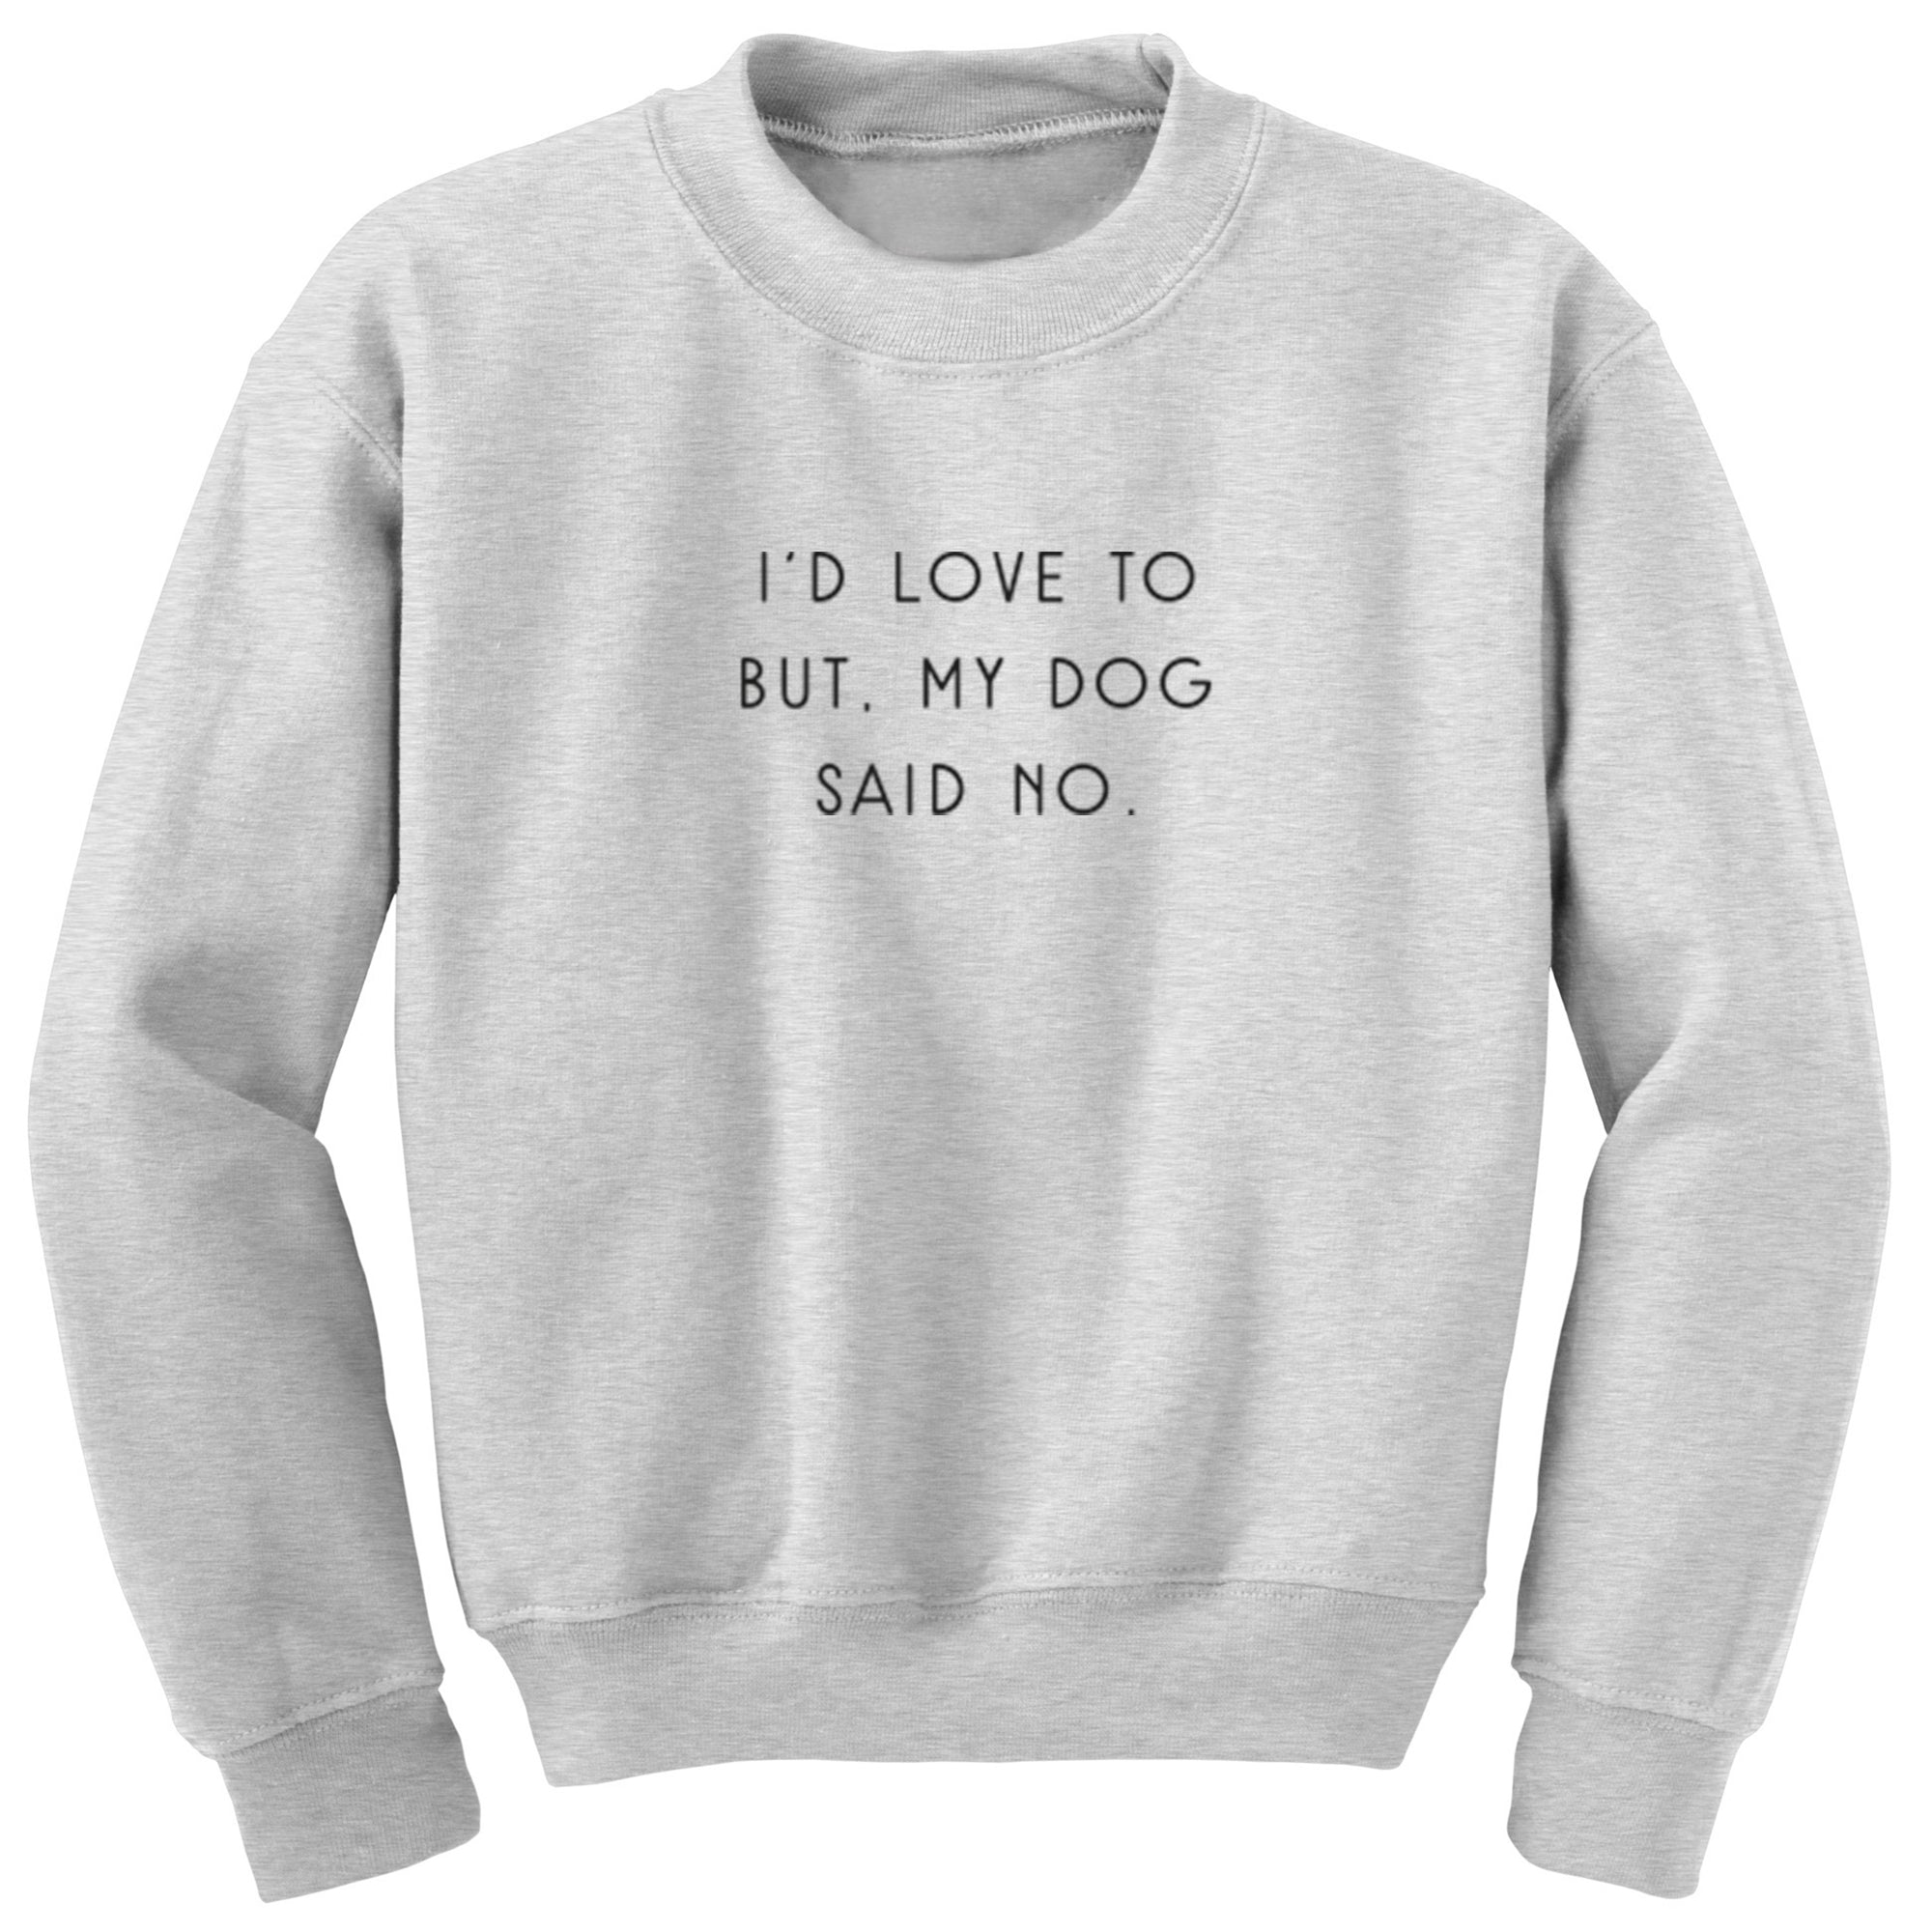 I'd Love To But, My Dog Said No Unisex Jumper S1059 - Illustrated Identity Ltd.